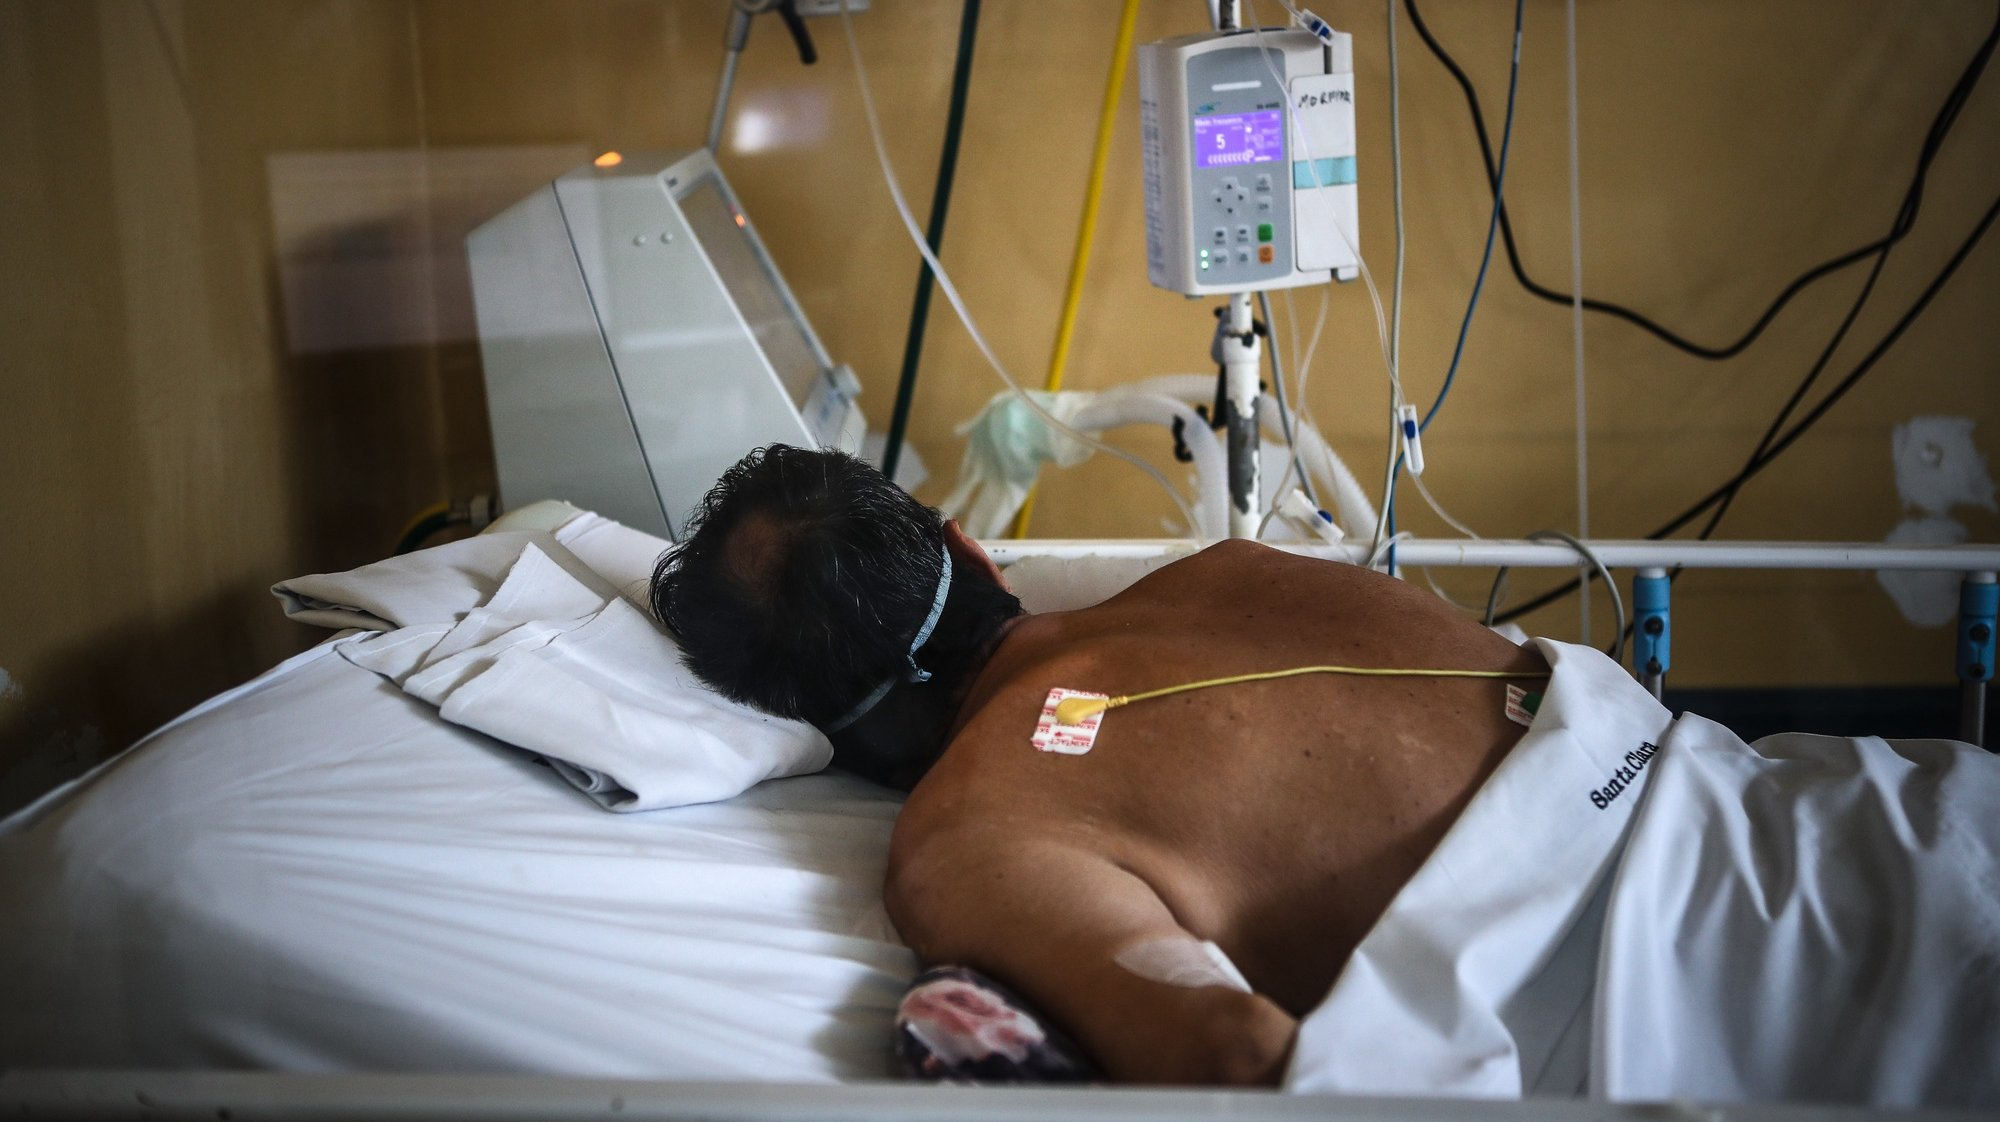 epa09175903 A pacient lies on bed as medical staff work at an intensive care unit in a hospital in Buenos Aires, Argentina, 28 April 2021 (issued 03 May 2021). Argentina enters a new stage of measures to stop the second wave of covid-19 and avoid health chaos, which include older people restrictions, especially in the metropolitan area of Buenos Aires, the most affected by the virus.  EPA/Juan Ignacio RONCORONI